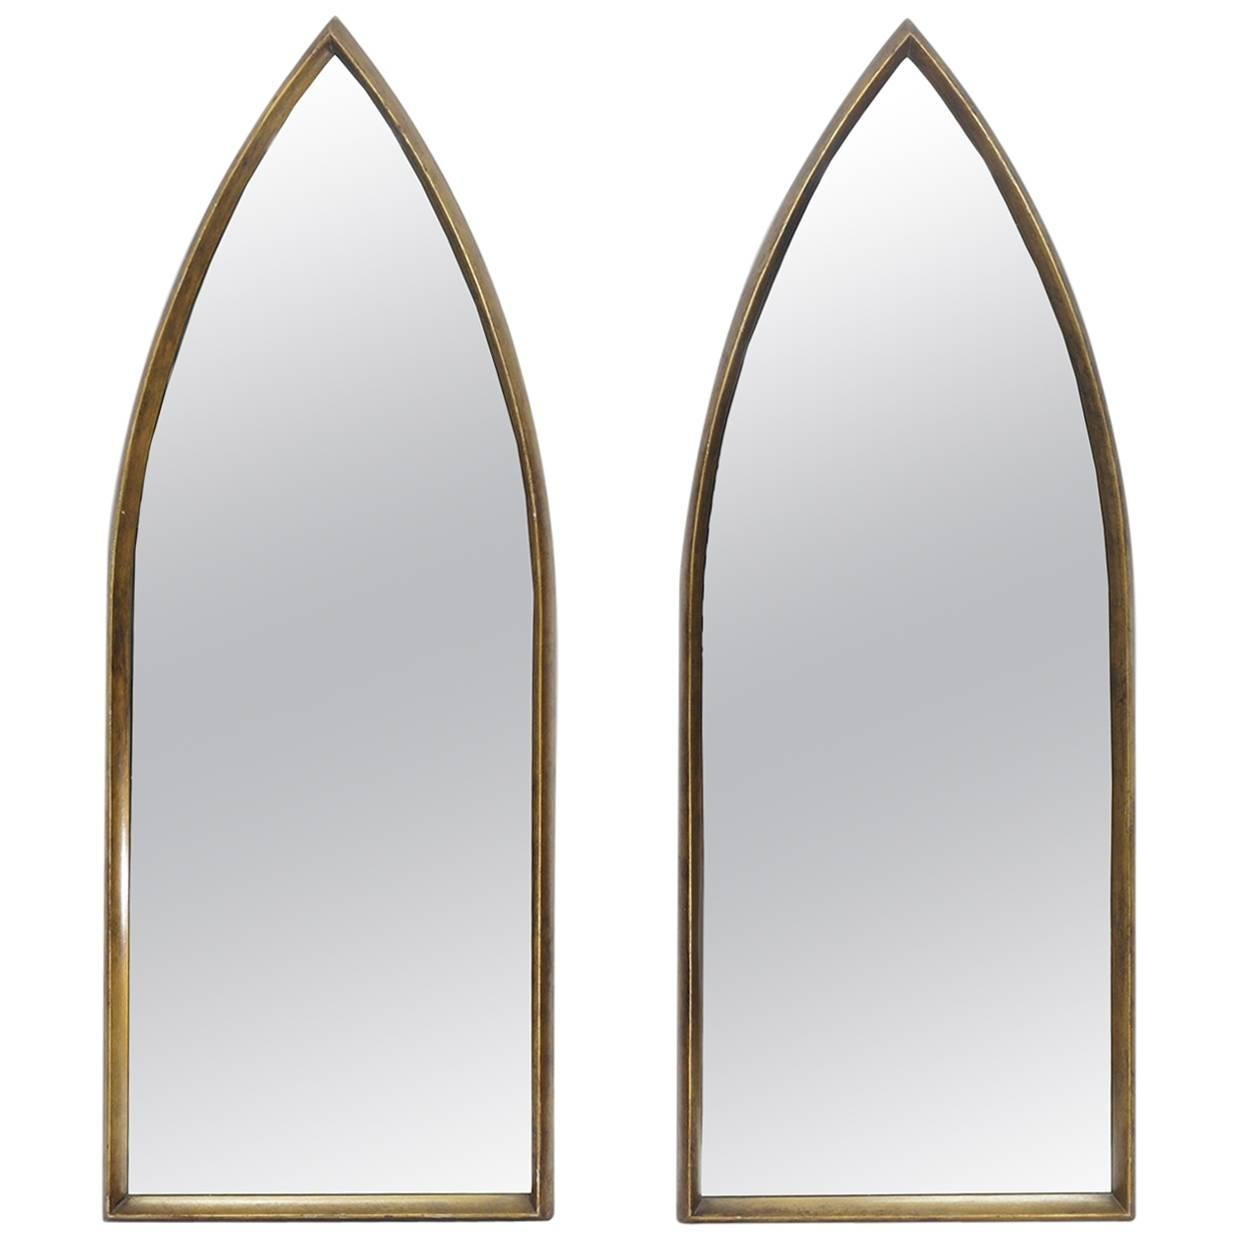 Pair of Gilt La Barge Arched Hanging Wall Mirrors